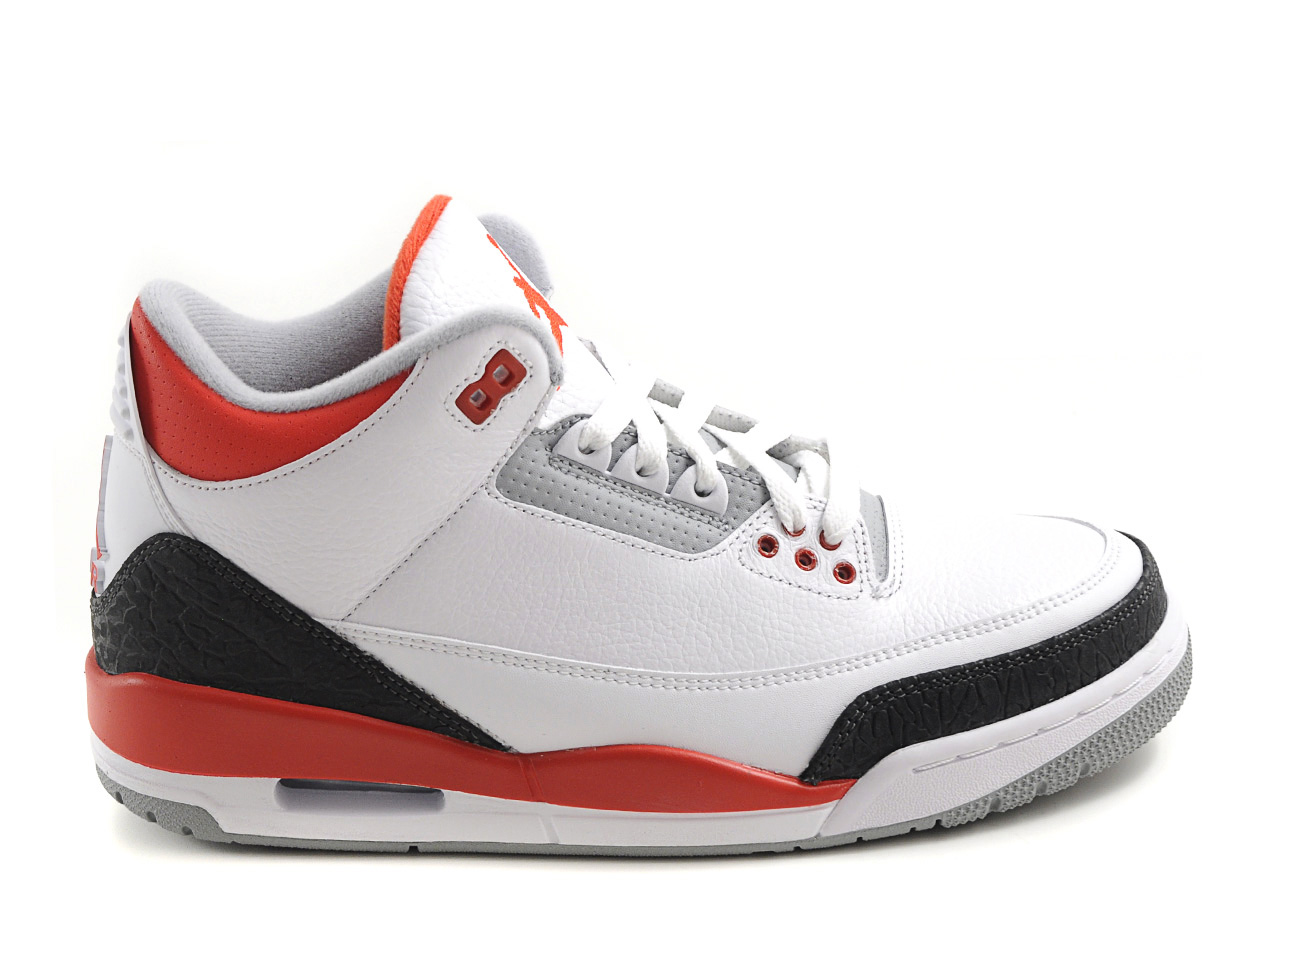 nike air jordan iii nike air max 360 chaussures vente. Black Bedroom Furniture Sets. Home Design Ideas